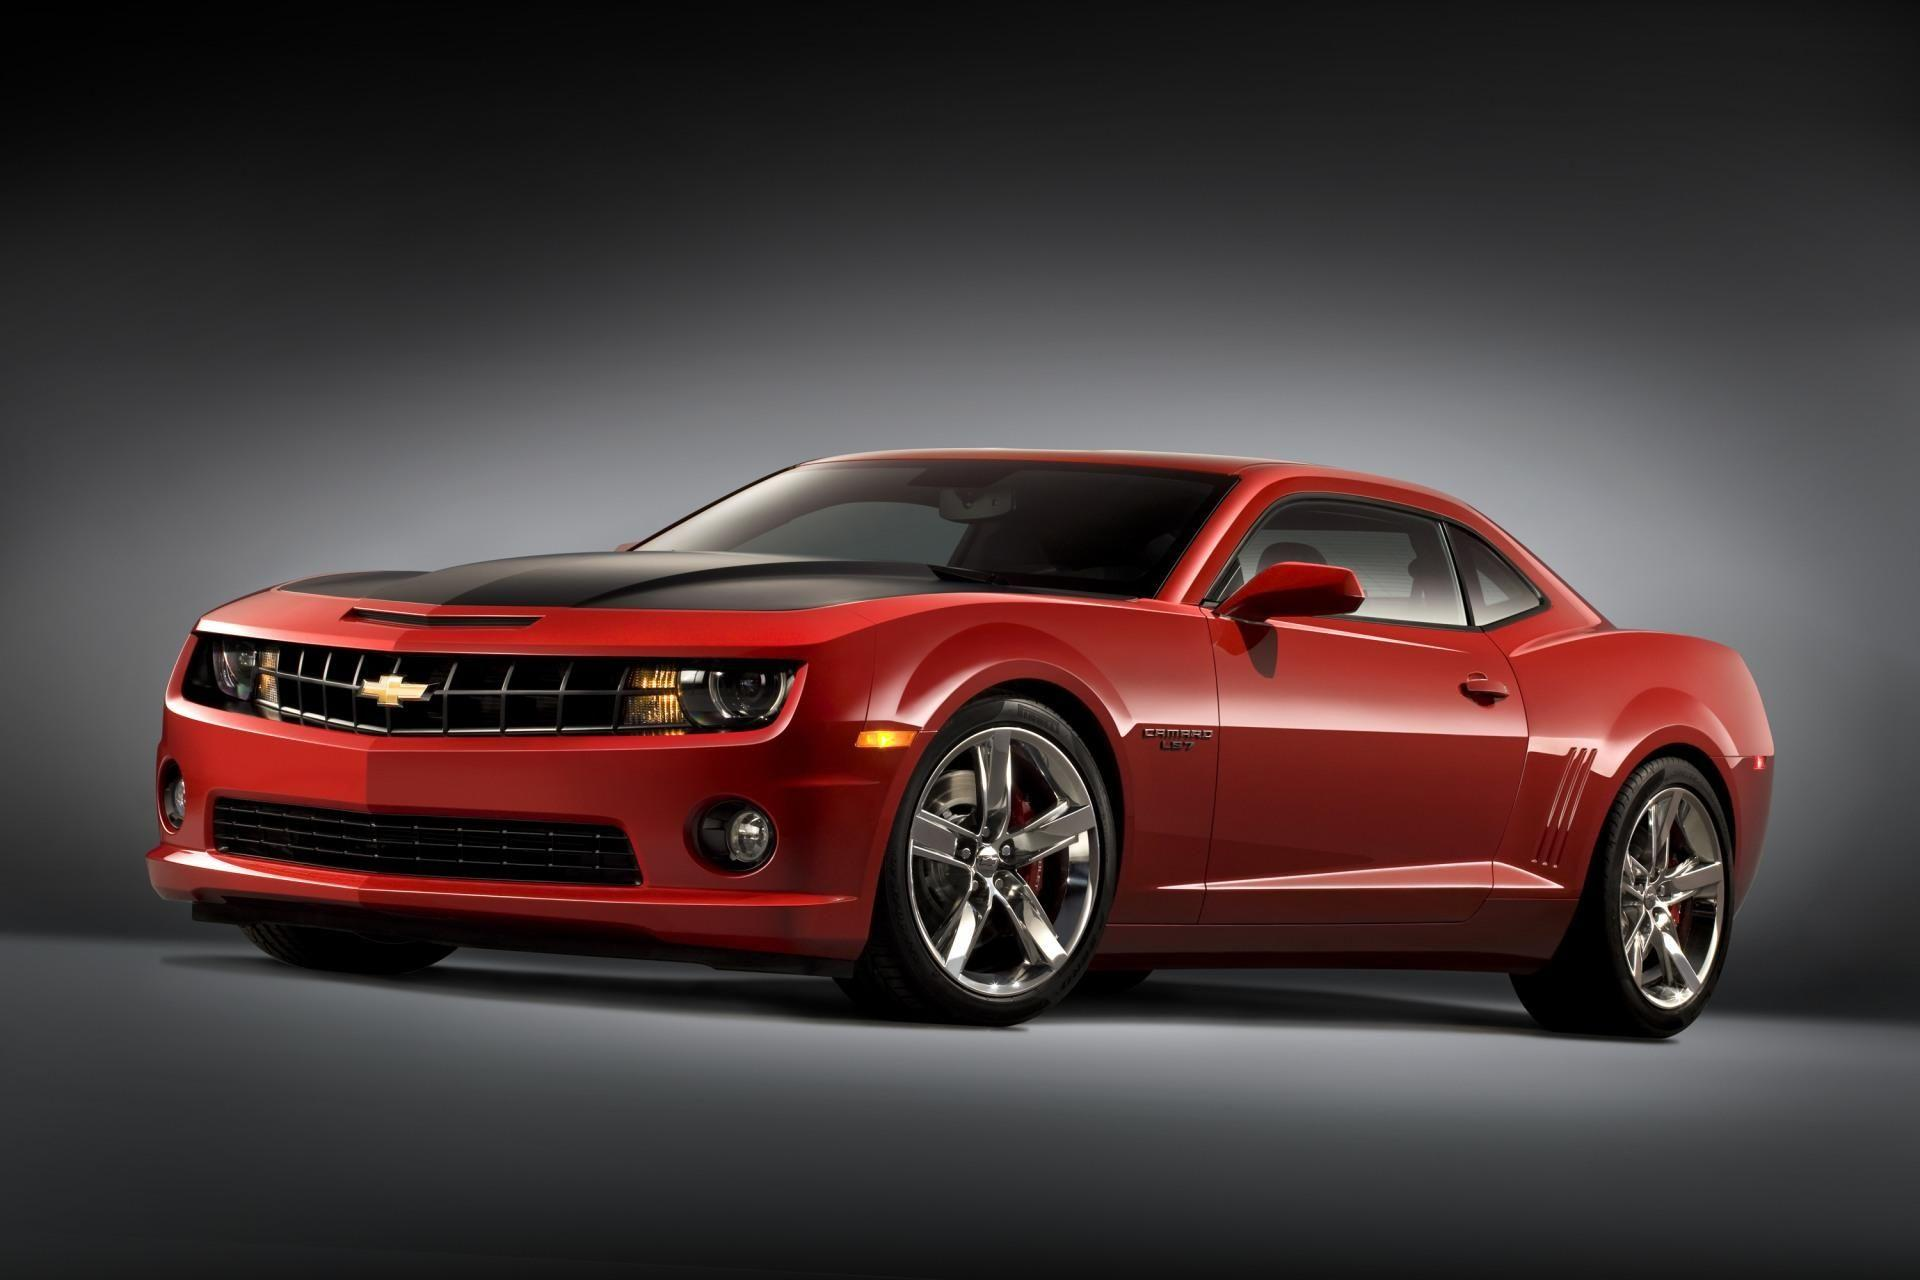 2010 Chevrolet Camaro LS7 Concept News and Information